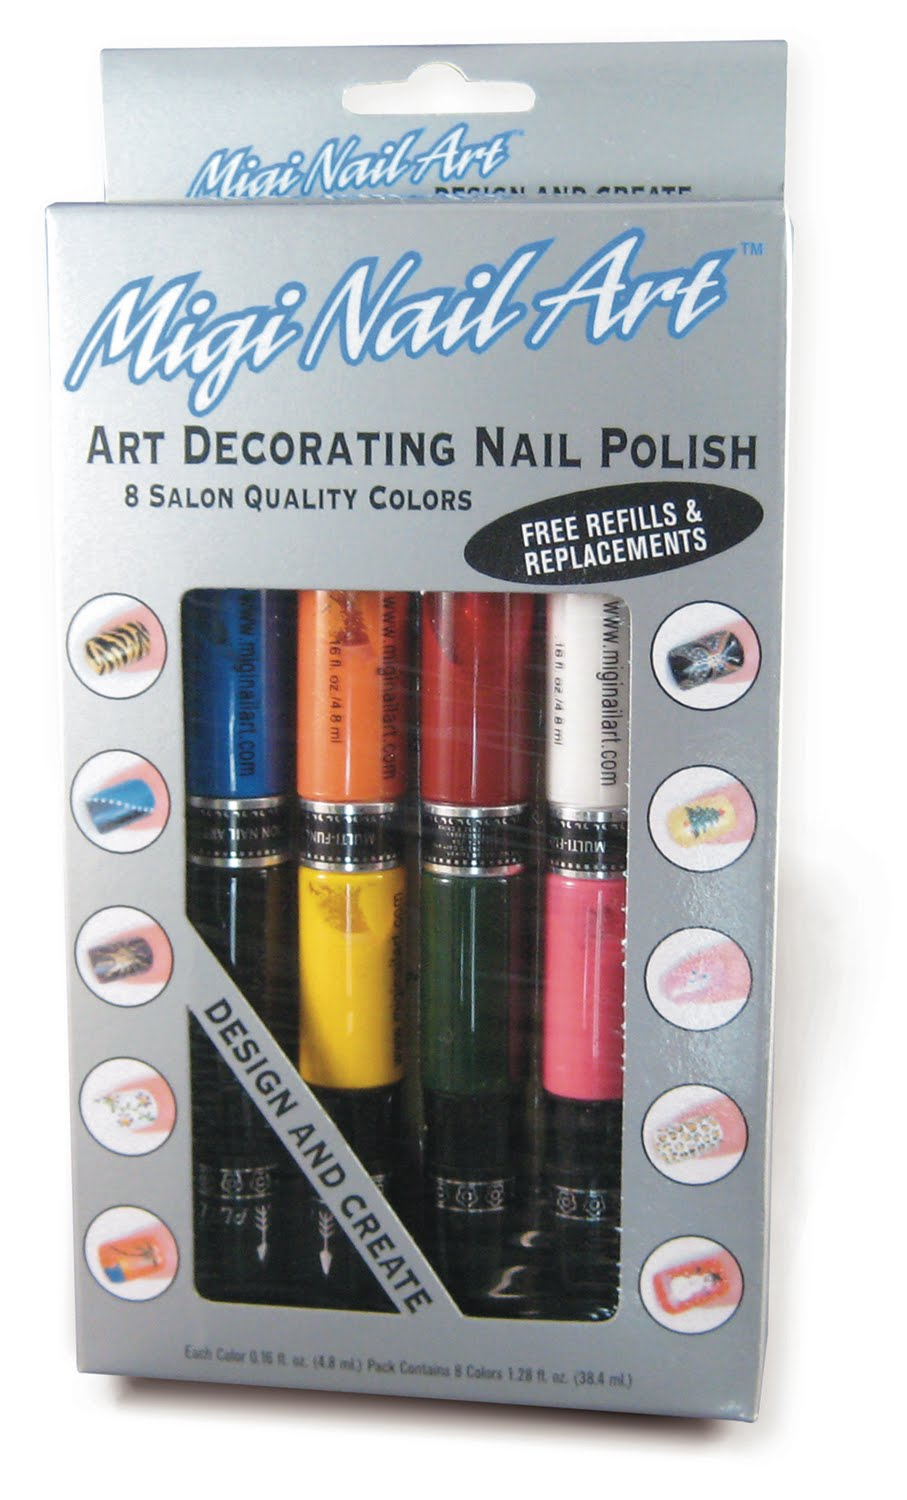 migi nail art, nail art, nail art kits, 3d nail art, nail art design, how to do nail art, nail art pens, simple nail art, nail art designs, nail art designs gallery, pictures of nail art, nail art ideas, nails art, nails art design, nail art magazine, nail art images-36